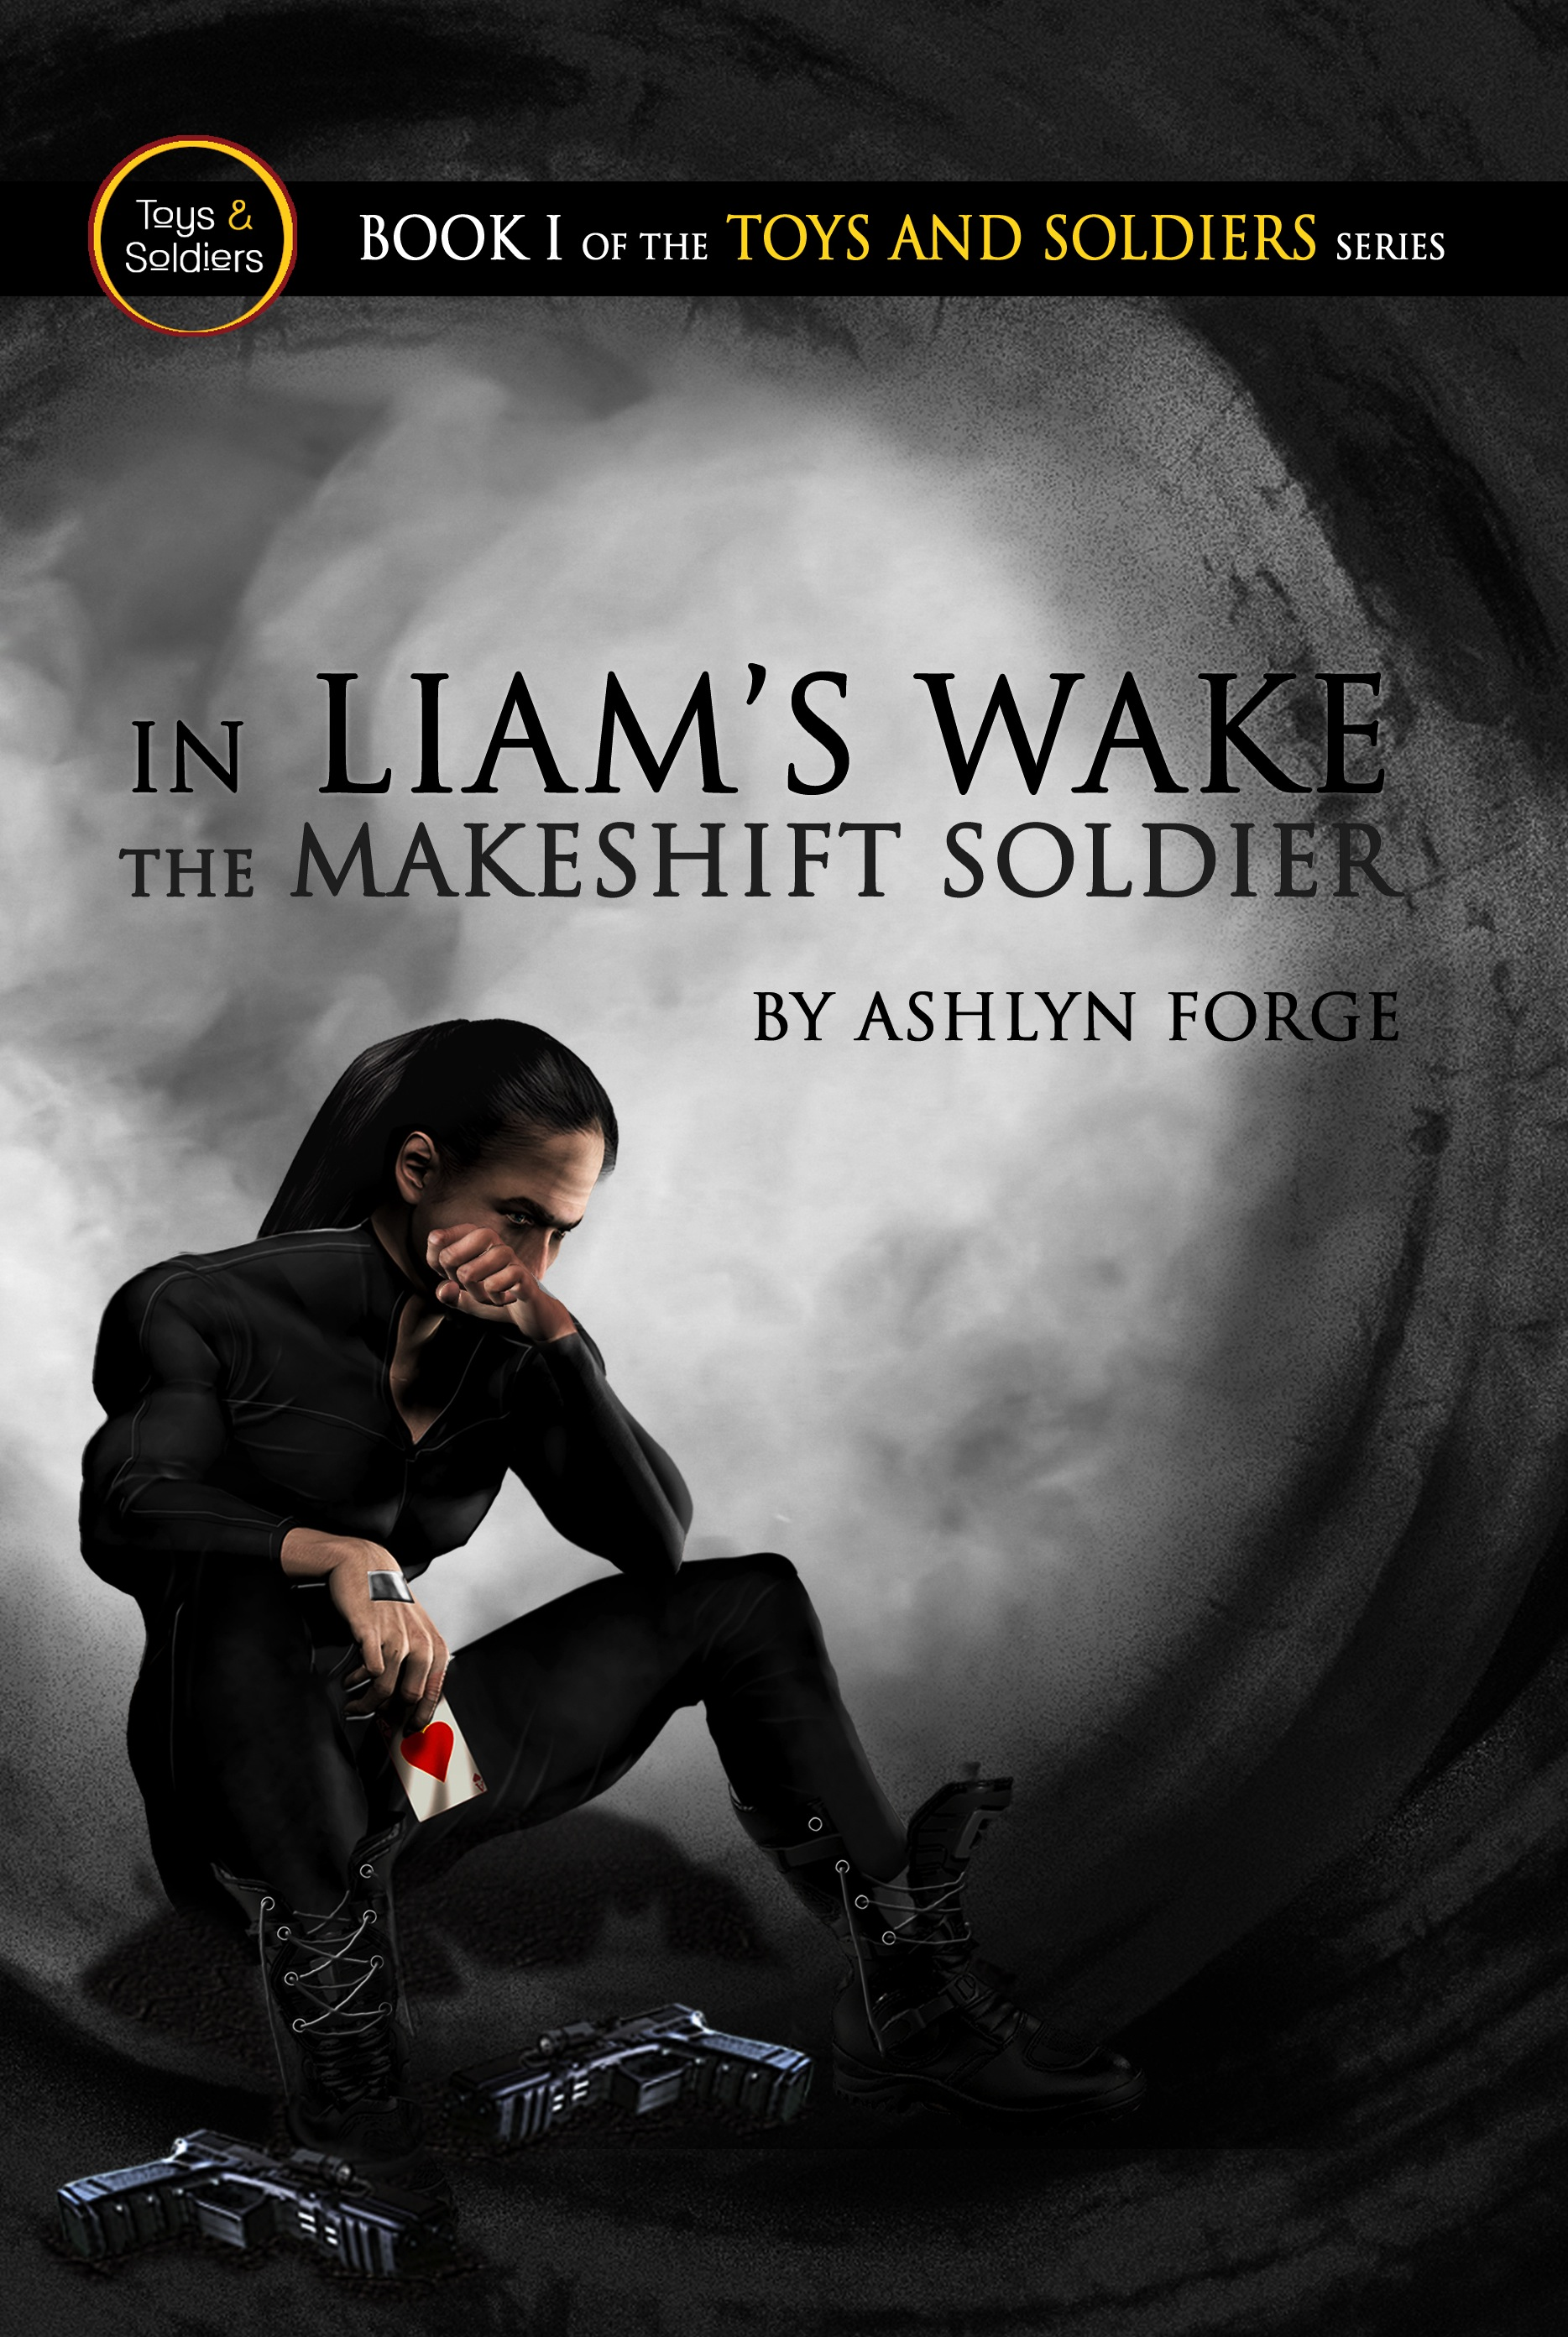 Book Review: In Liam's Wake: The Makeshift Soldier by Ashlyn Forge